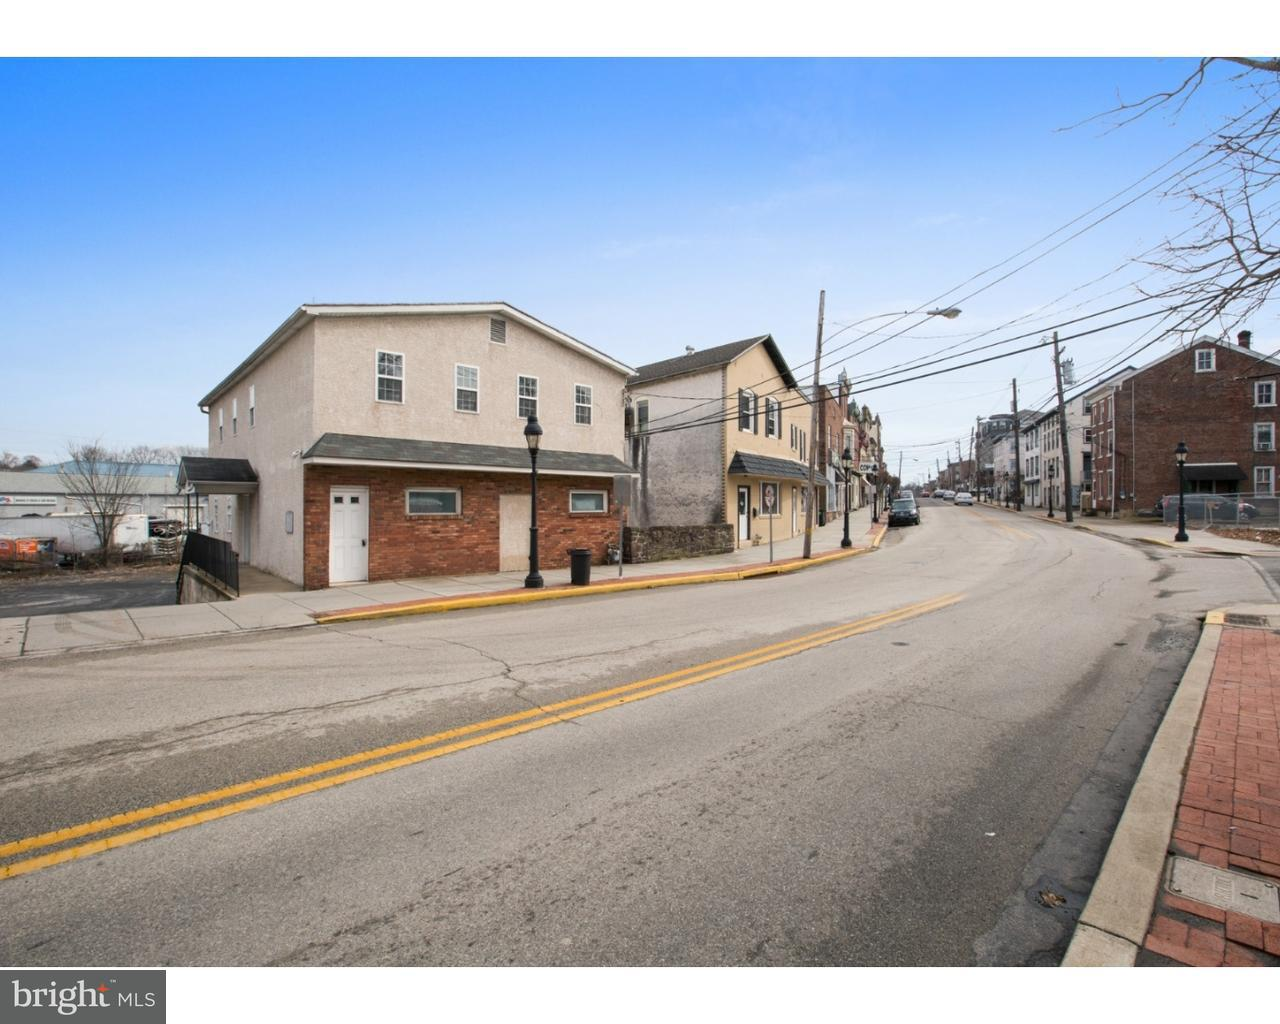 145 N MAIN ST, SPRING CITY - Listed at $1,200, SPRING CITY